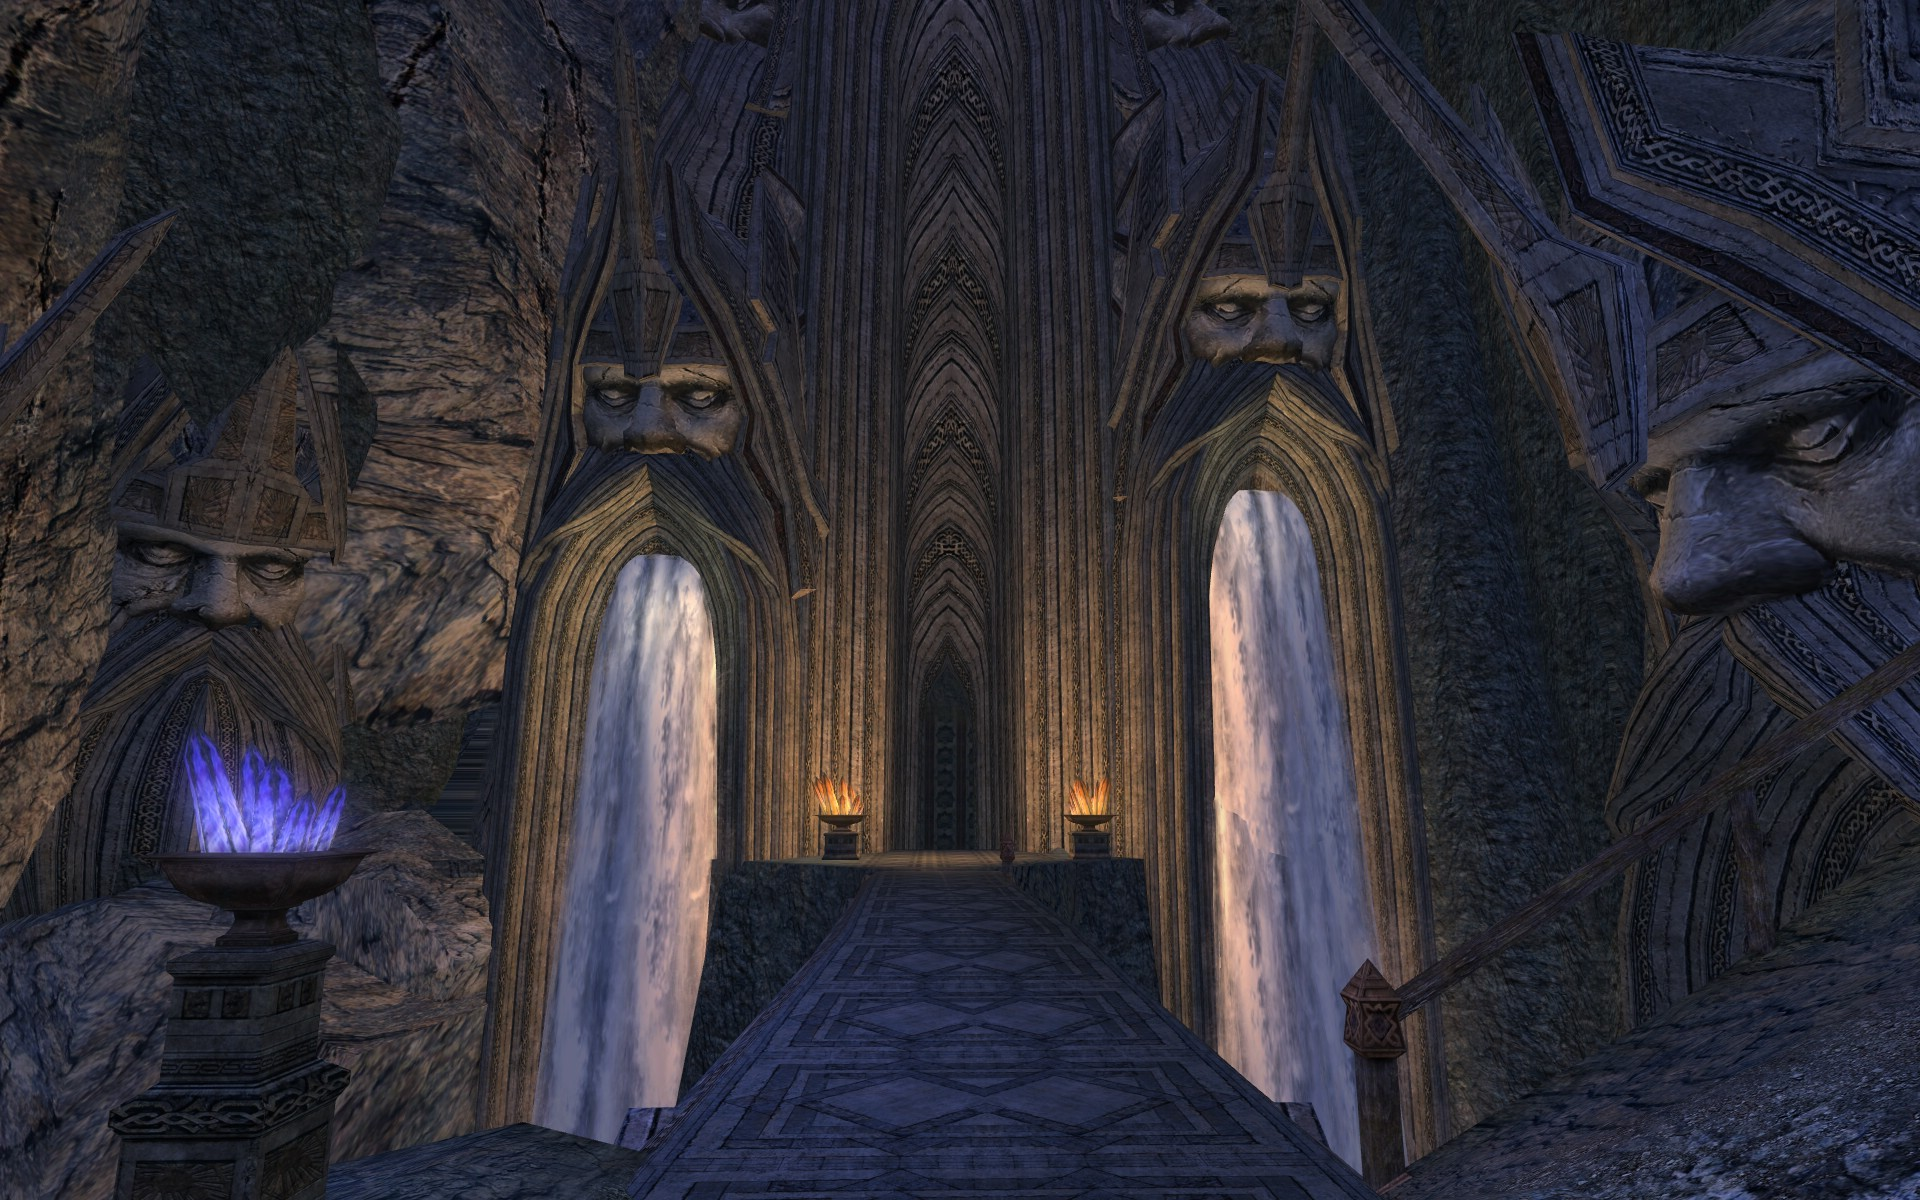 Lord Of The Rings Hd Backgrounds Pixelstalknet